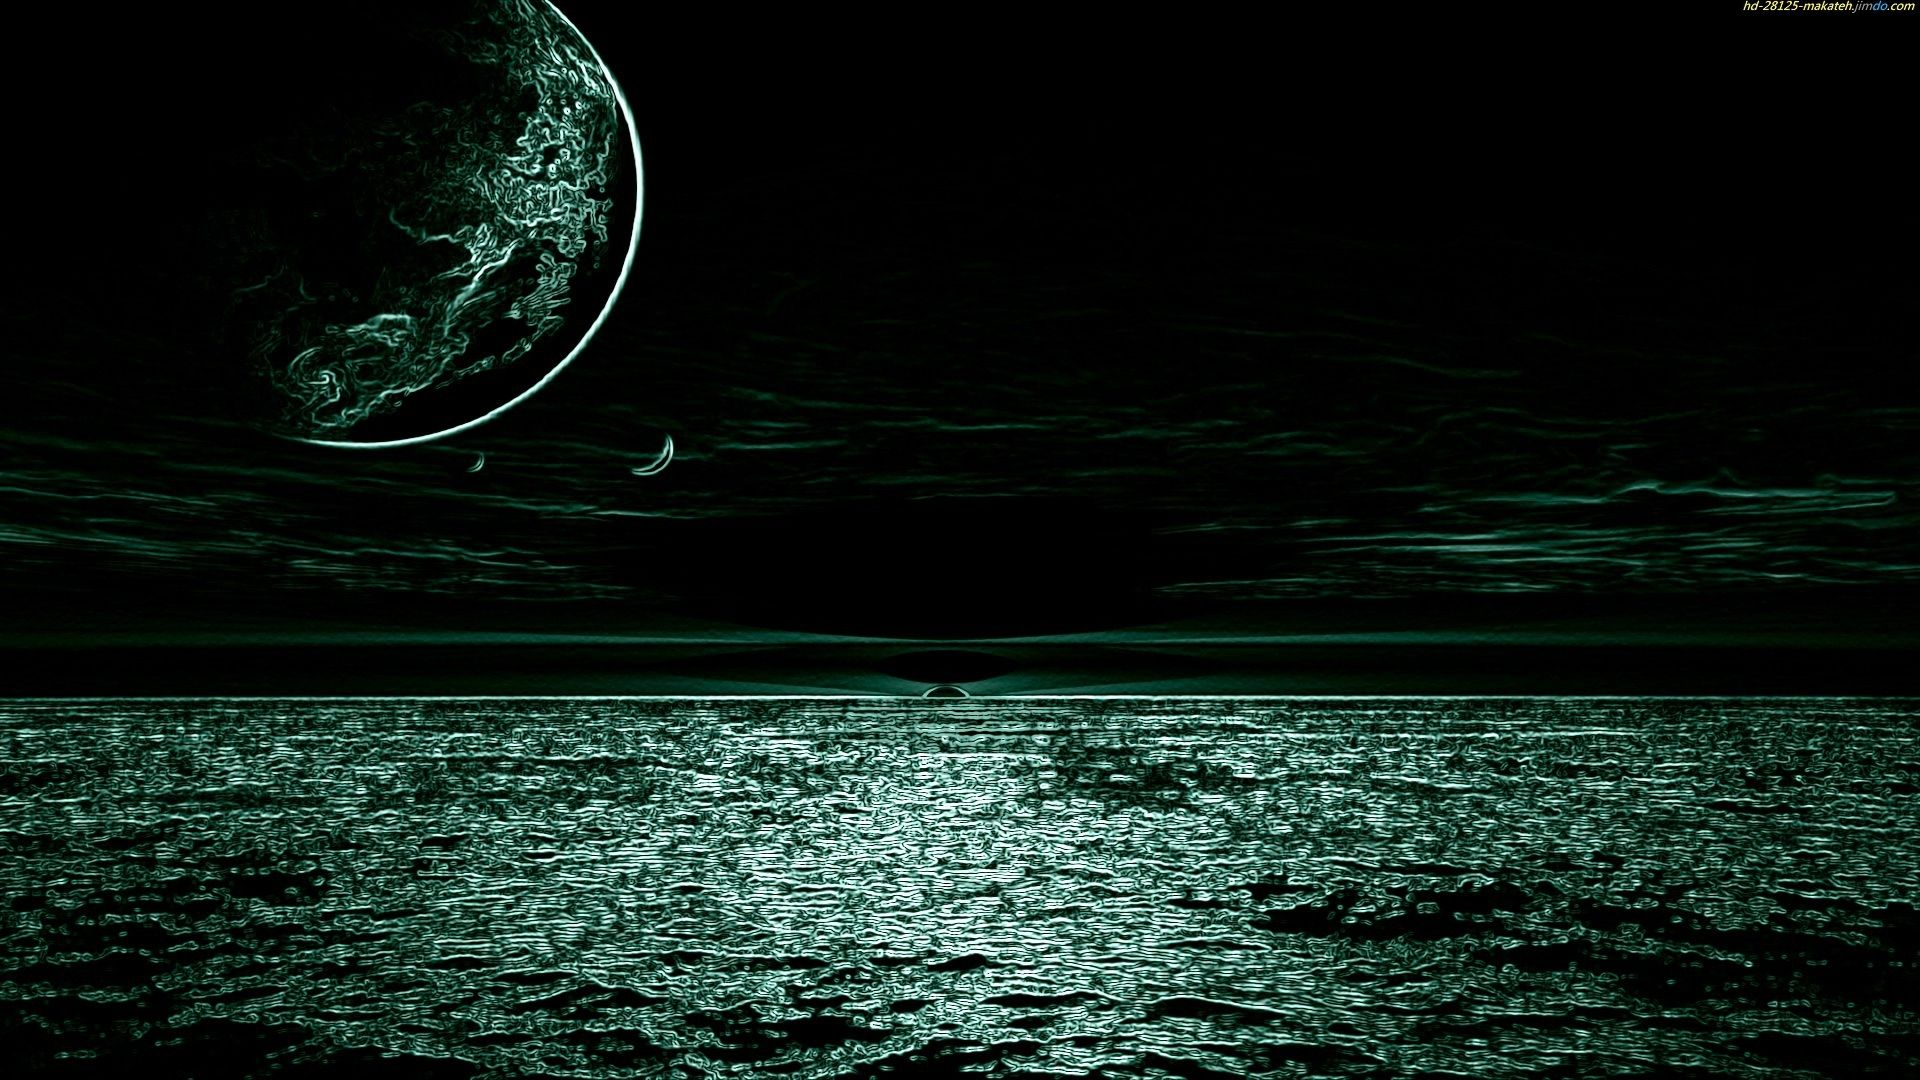 Sci Fi Abstract Wallpaper High Quality